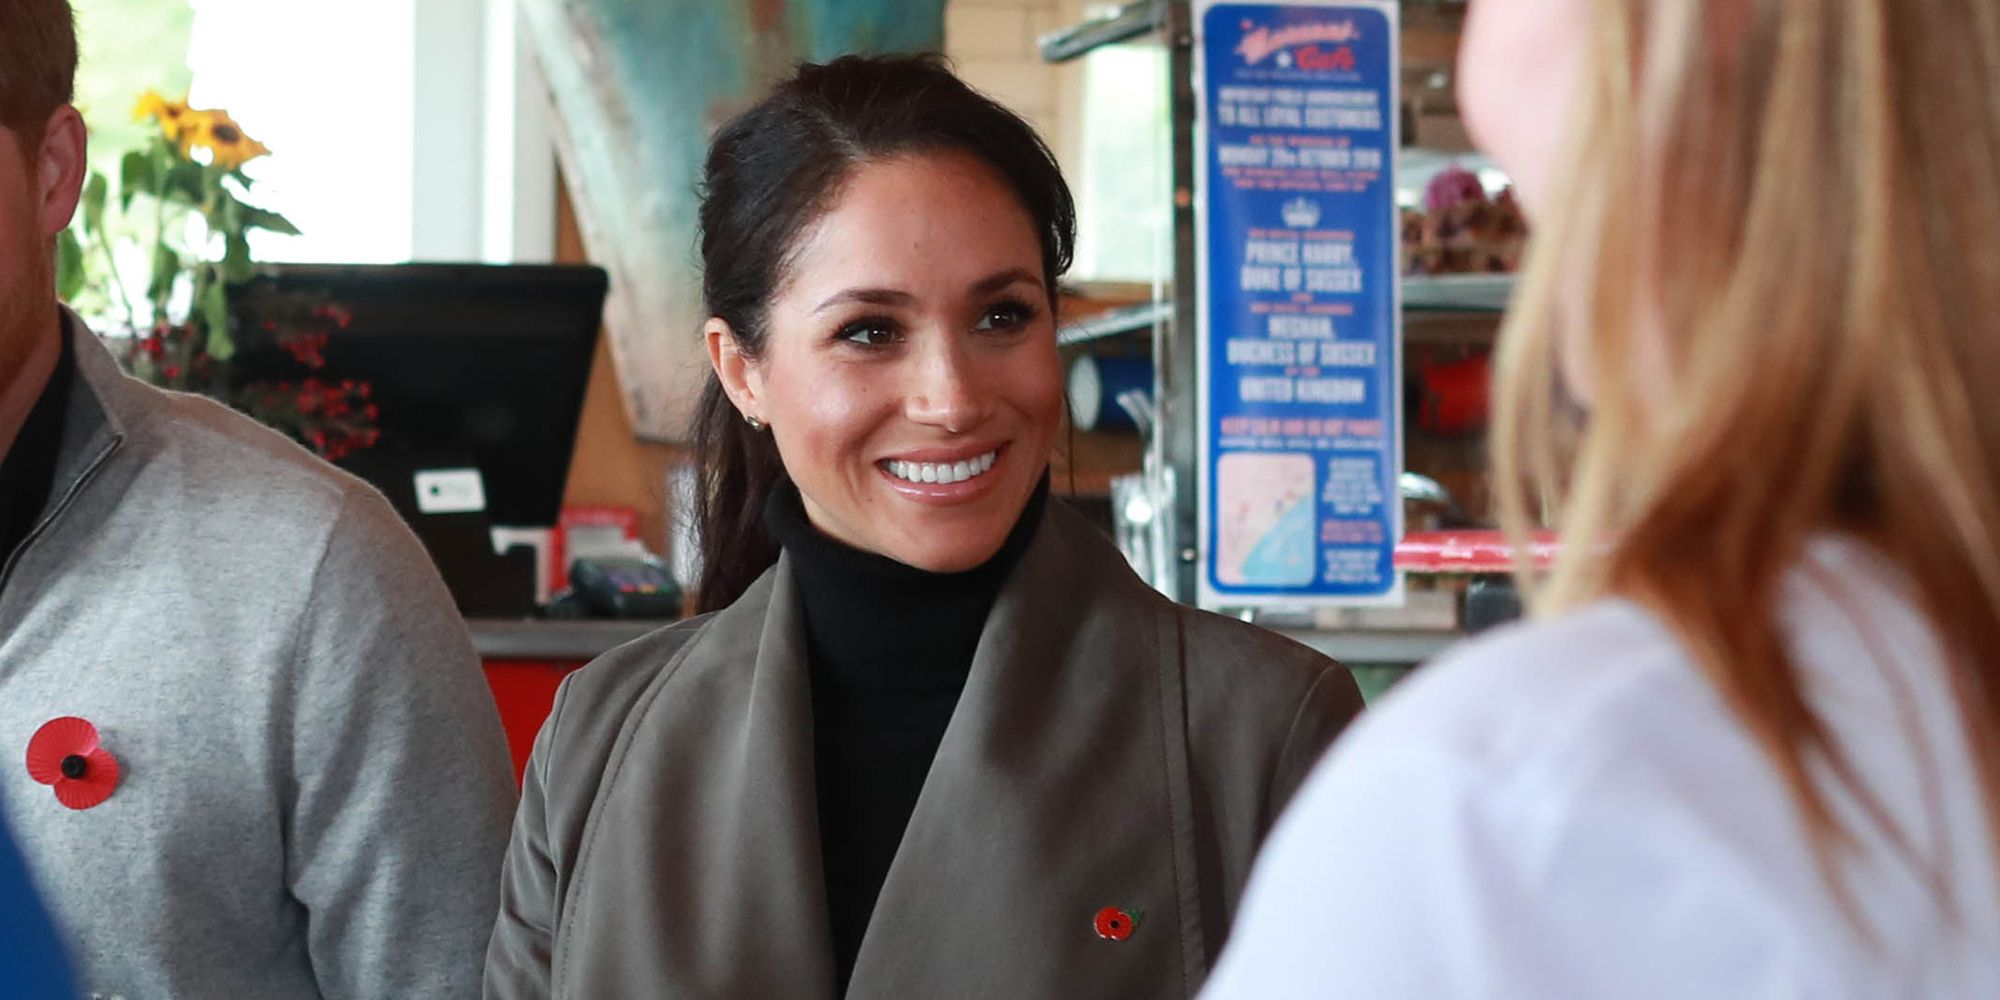 meghan markle in nieuw-zeeland Marenui Cafe over social media